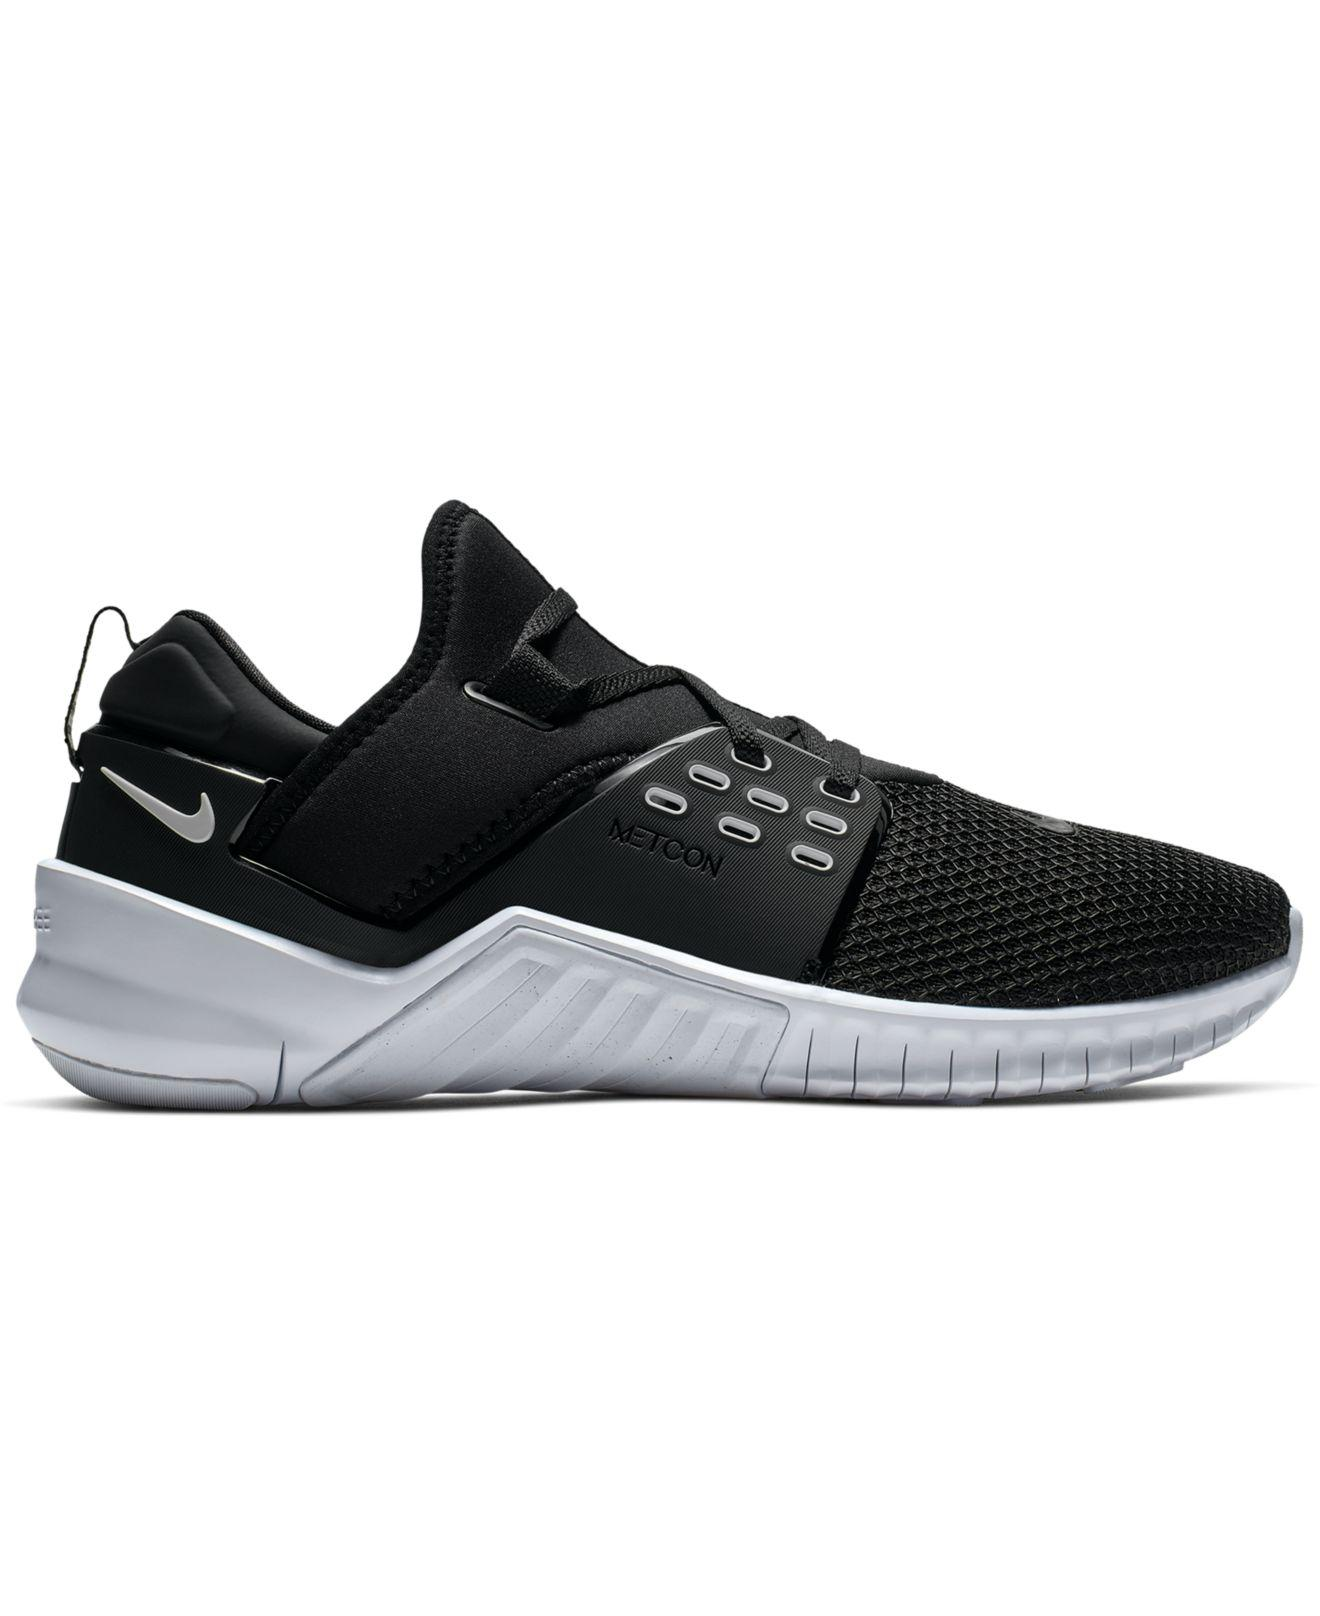 85e5735980f82 Lyst - Nike Free X Metcon 2 Training Sneakers From Finish Line in ...